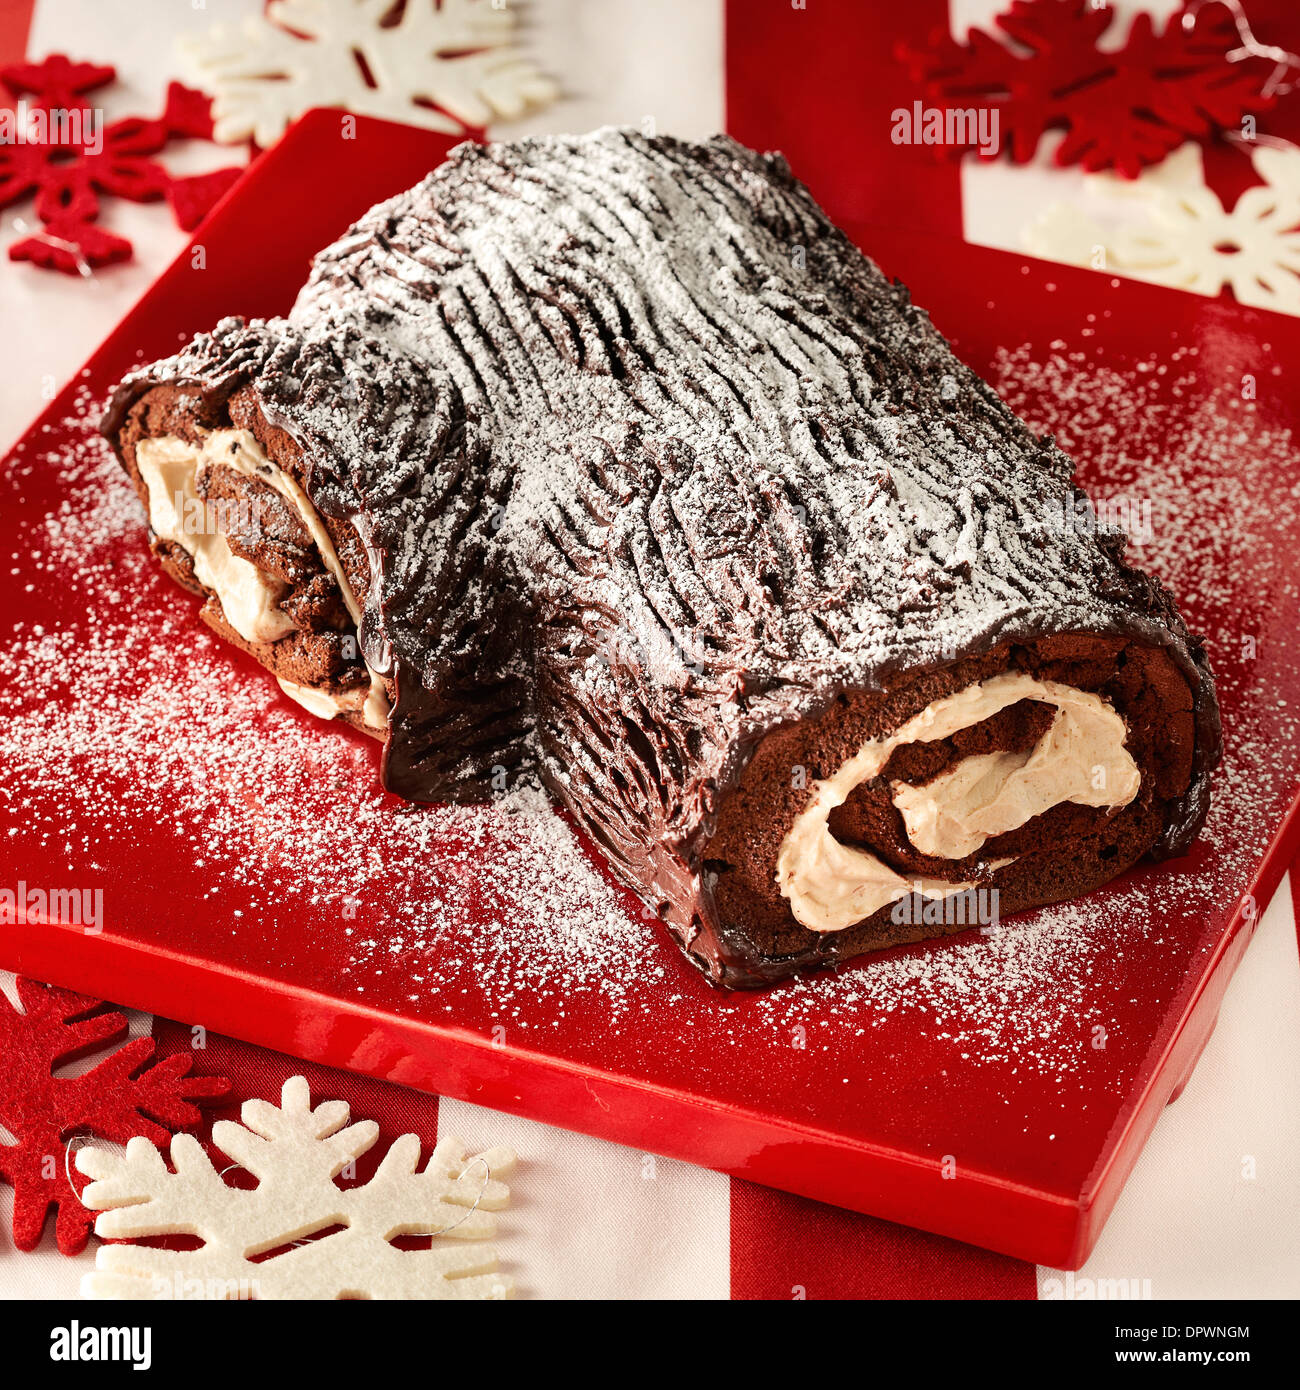 Yule log chocolate sponge vanilla cream Christmas traditional red plate icing sugar dusting snow flake decoration - Stock Image